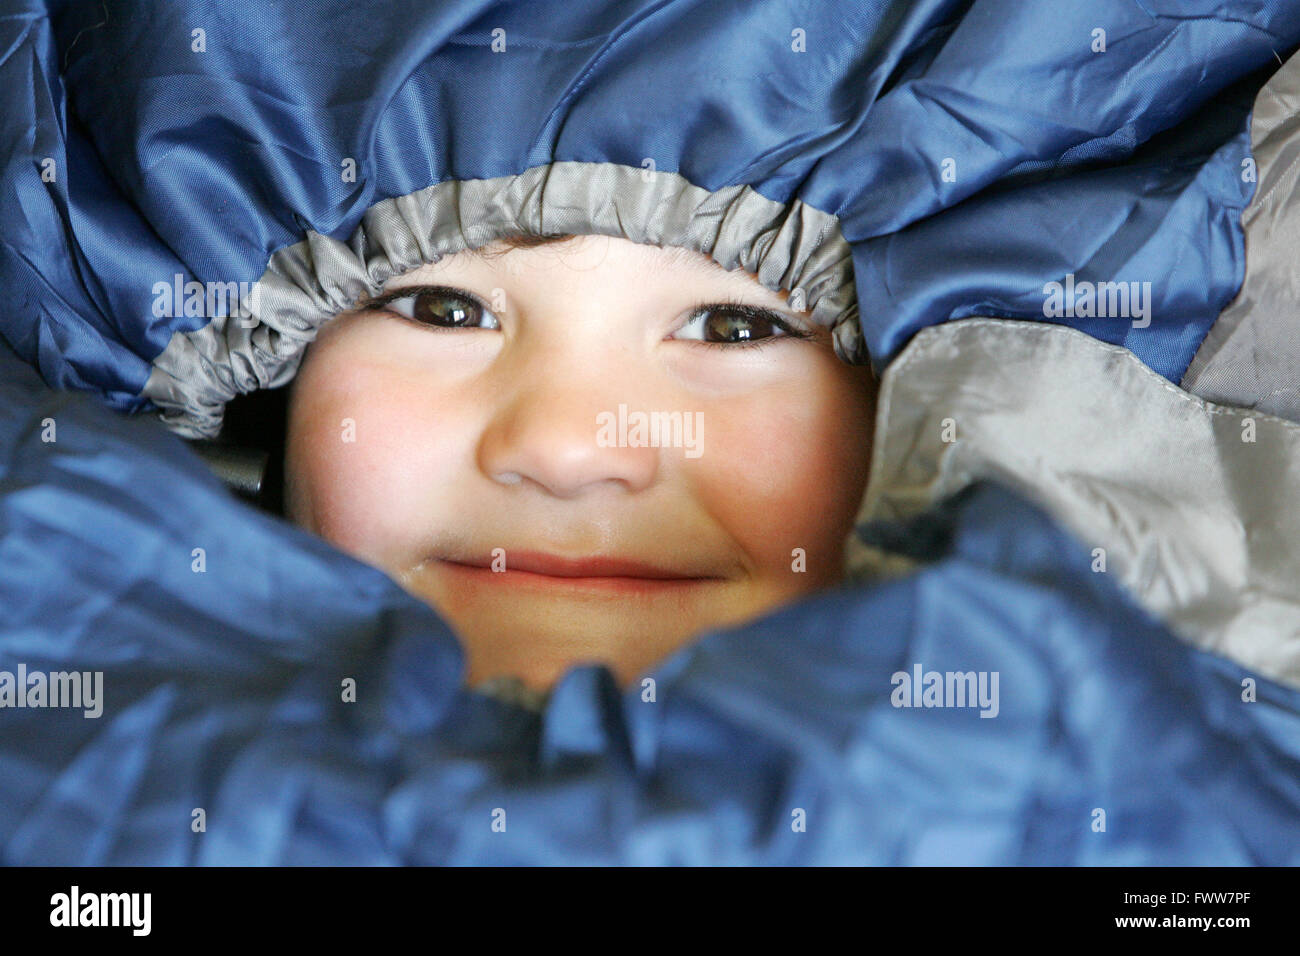 Young boy all tucked up in a sleeping bag - Stock Image